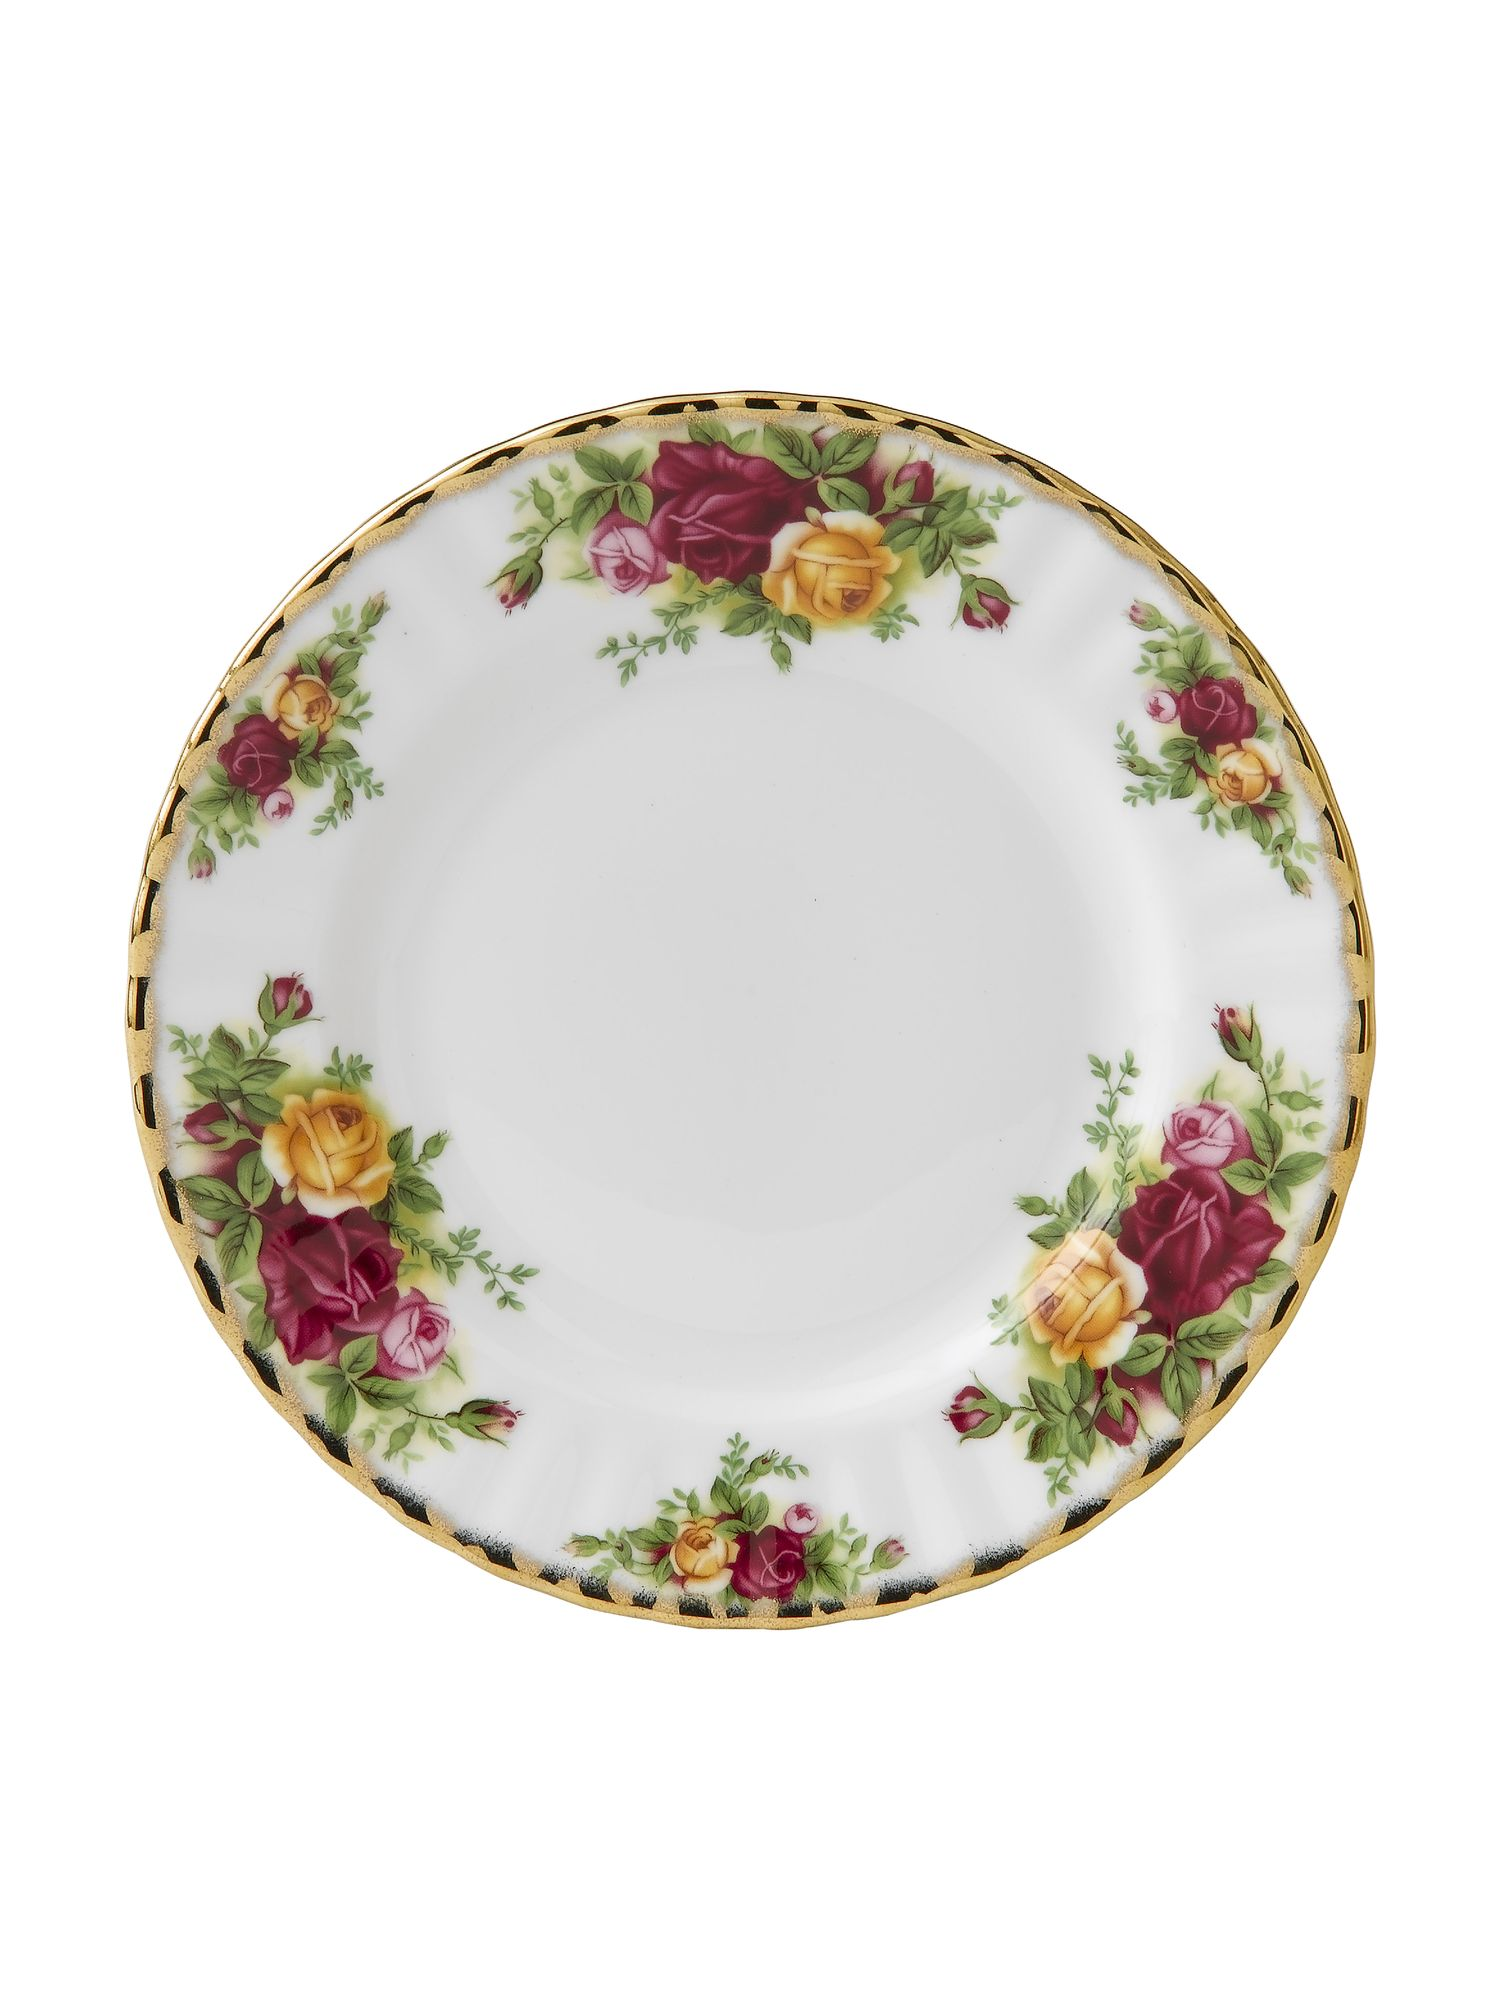 Royal Albert Old country roses 18cm plate.